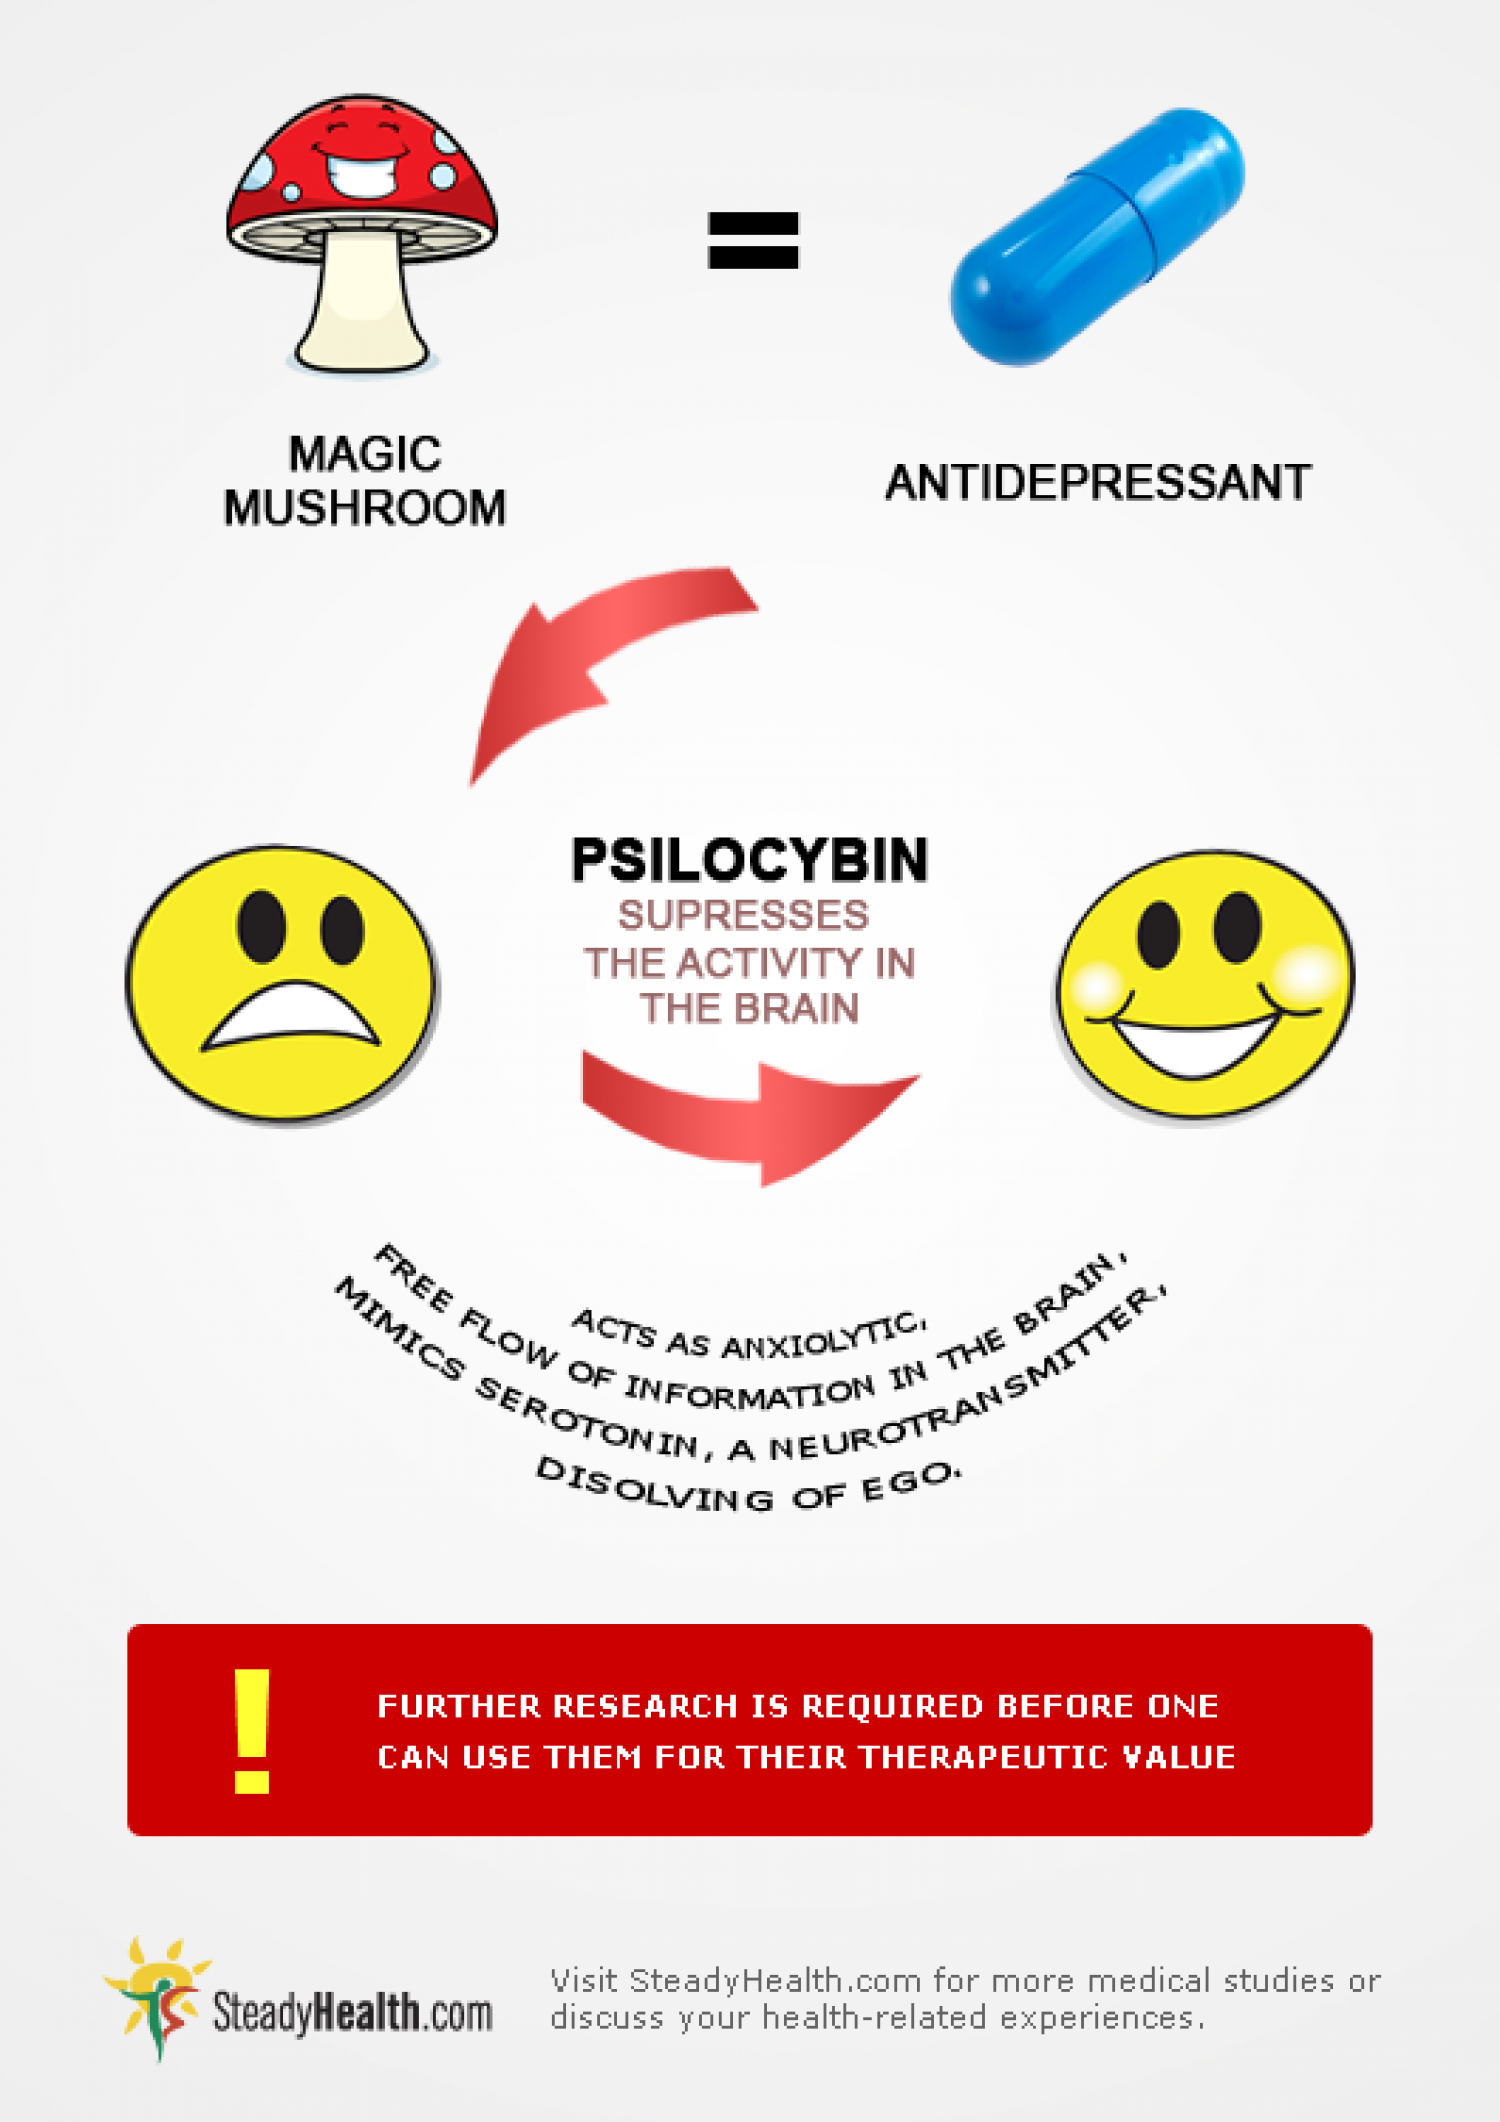 Psychedelic Mushrooms - A New Antidepressant? Infographic